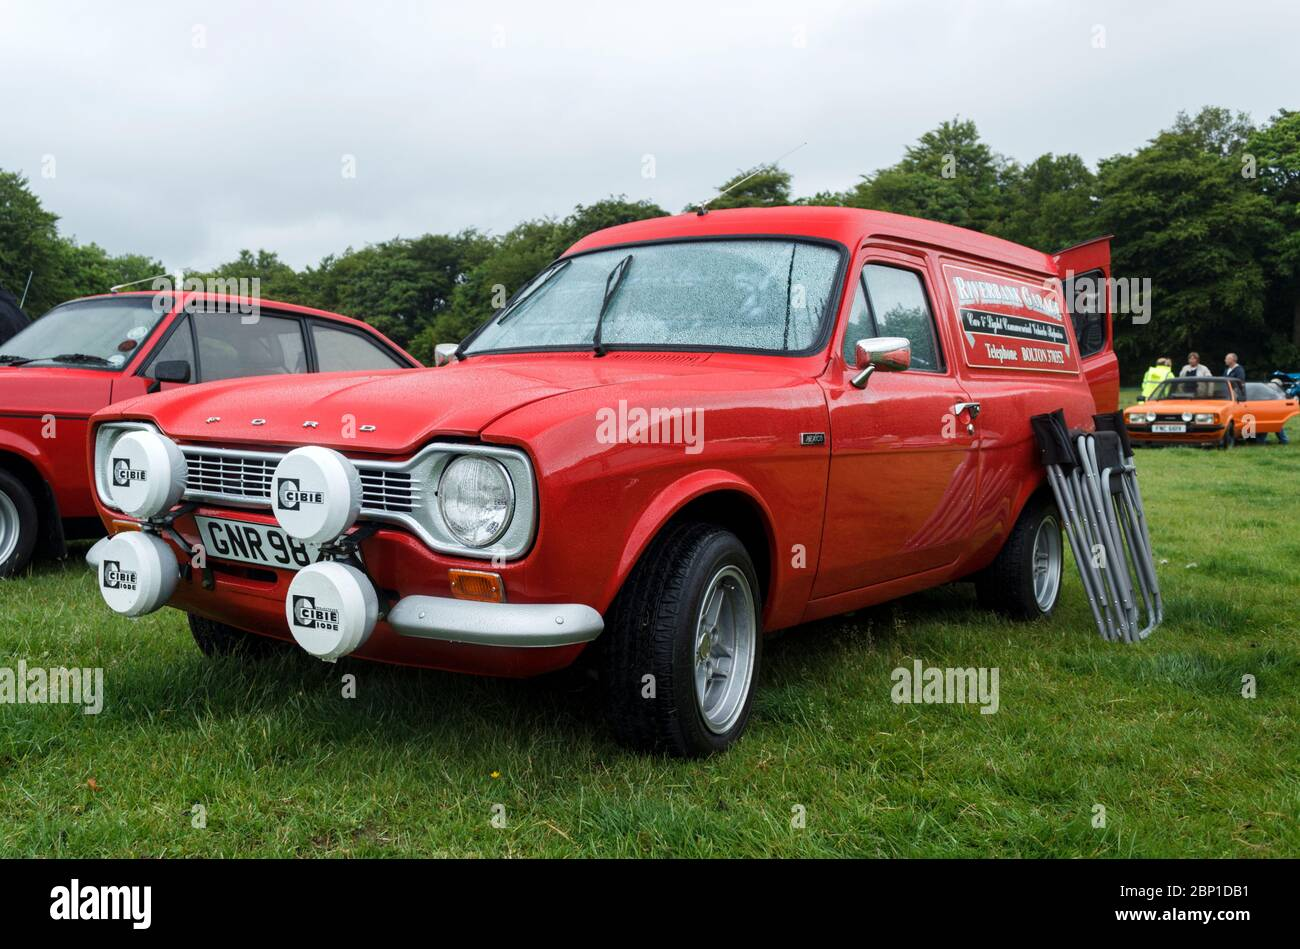 Ford Escort Mark 1 van Stock Photo